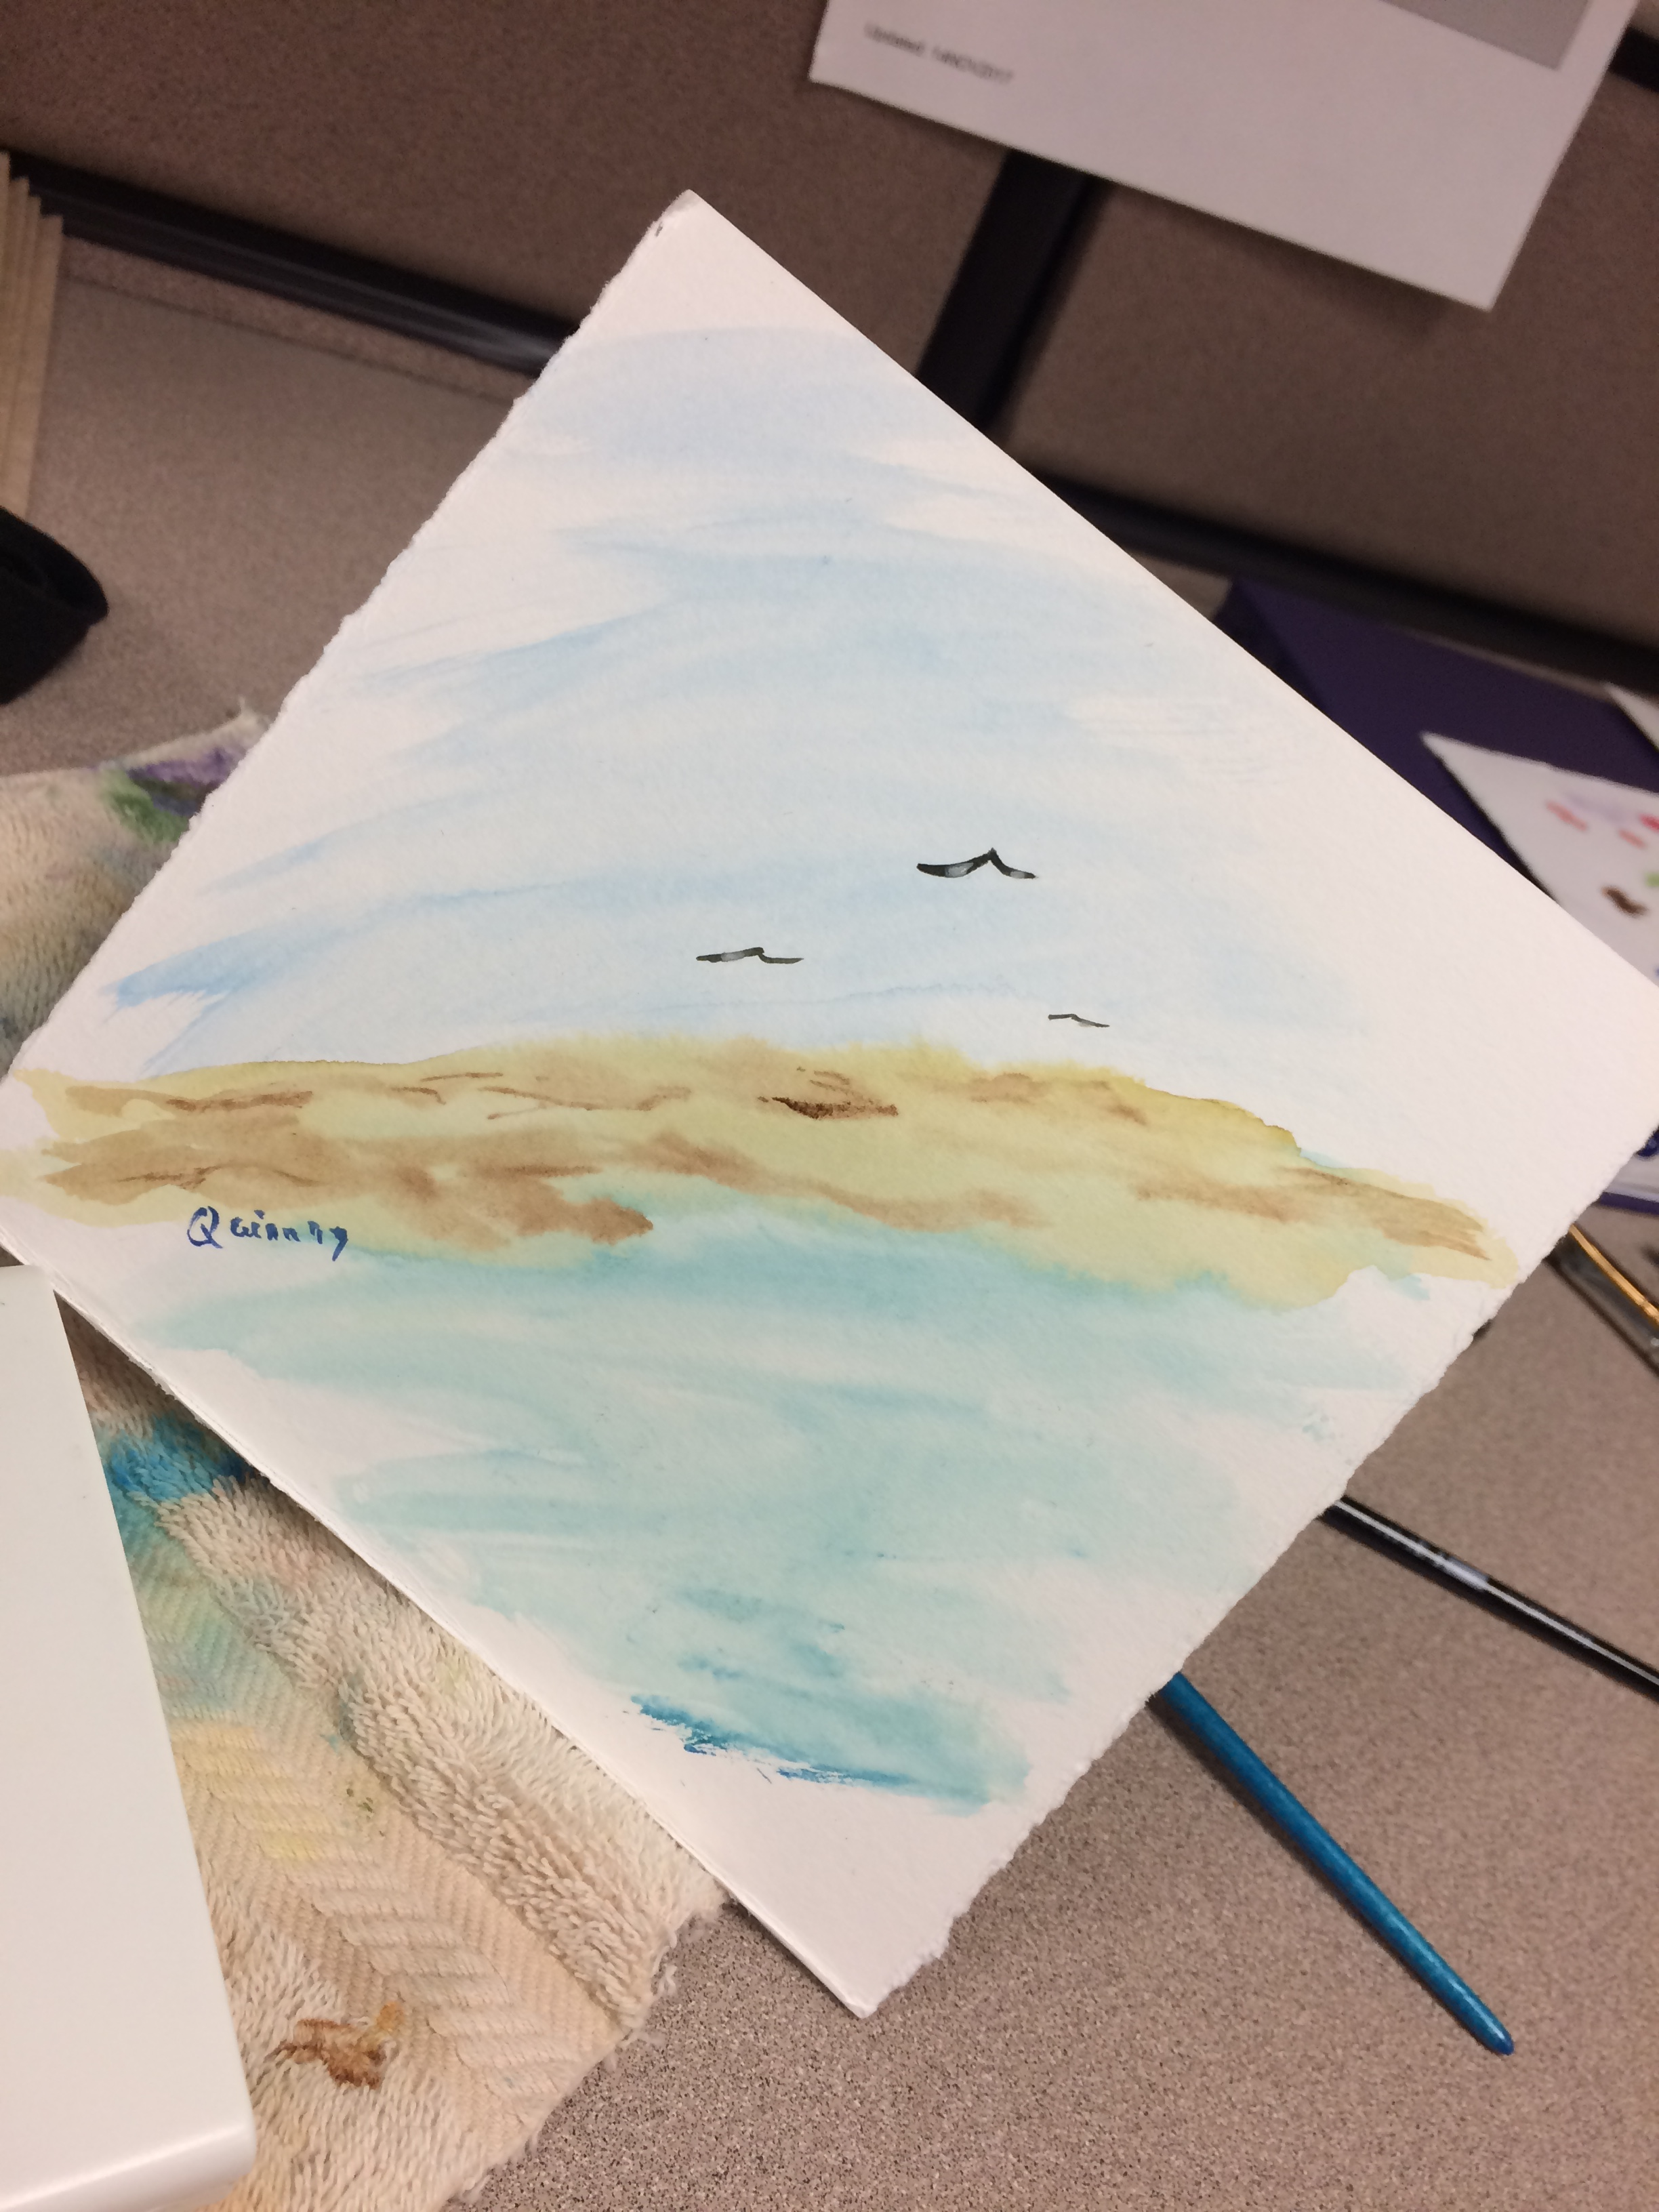 watercolour painting of sky, land, water with three birds flying.